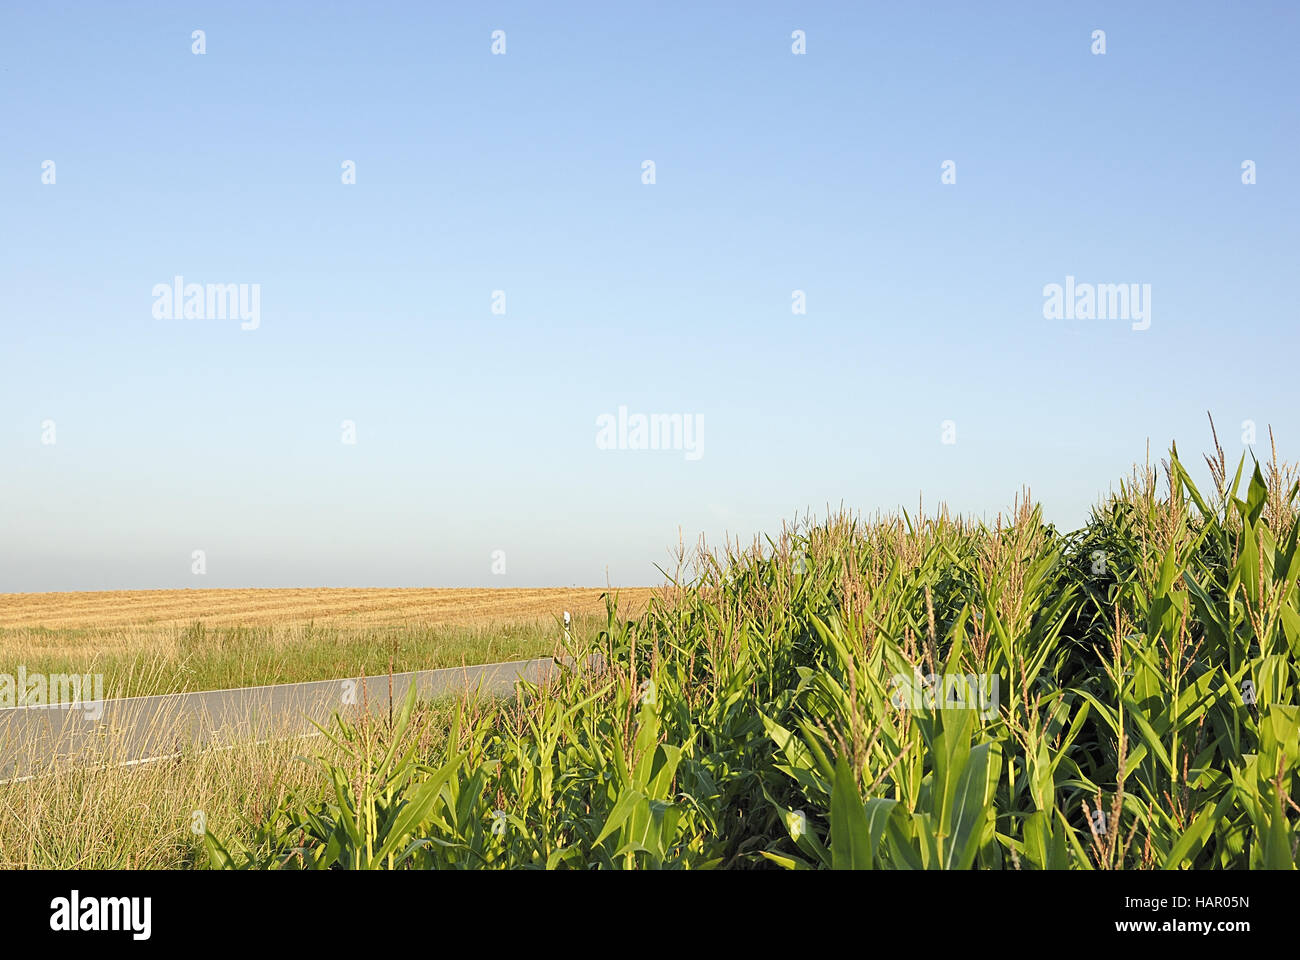 maisfeld 2 - maize/corn field 2 - Stock Image